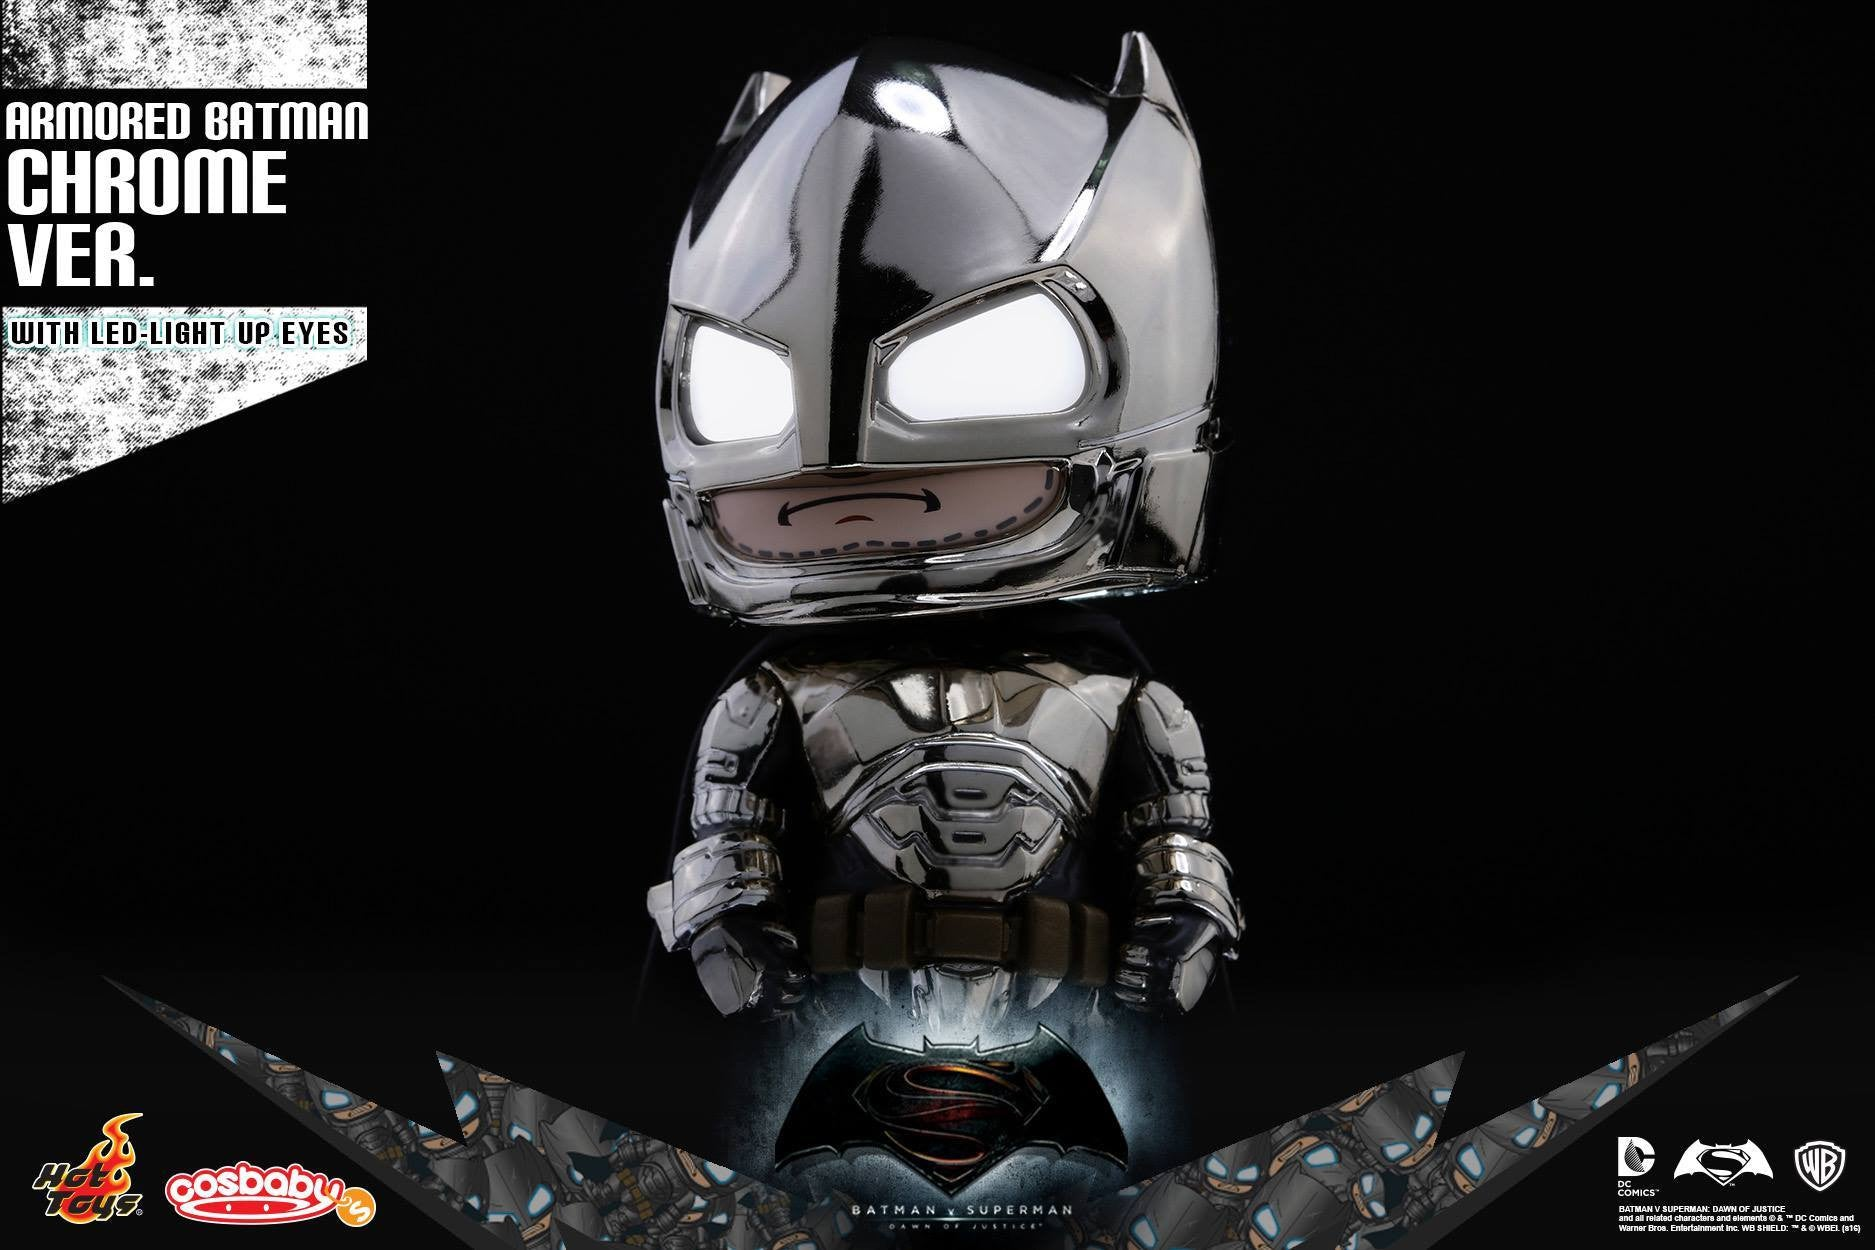 Hot Toys - COSB229-231 - Batman v Superman: Dawn of Justice - Armored Batman (Special Color Versions) Cosbaby (S) Bundle Set - Marvelous Toys - 3